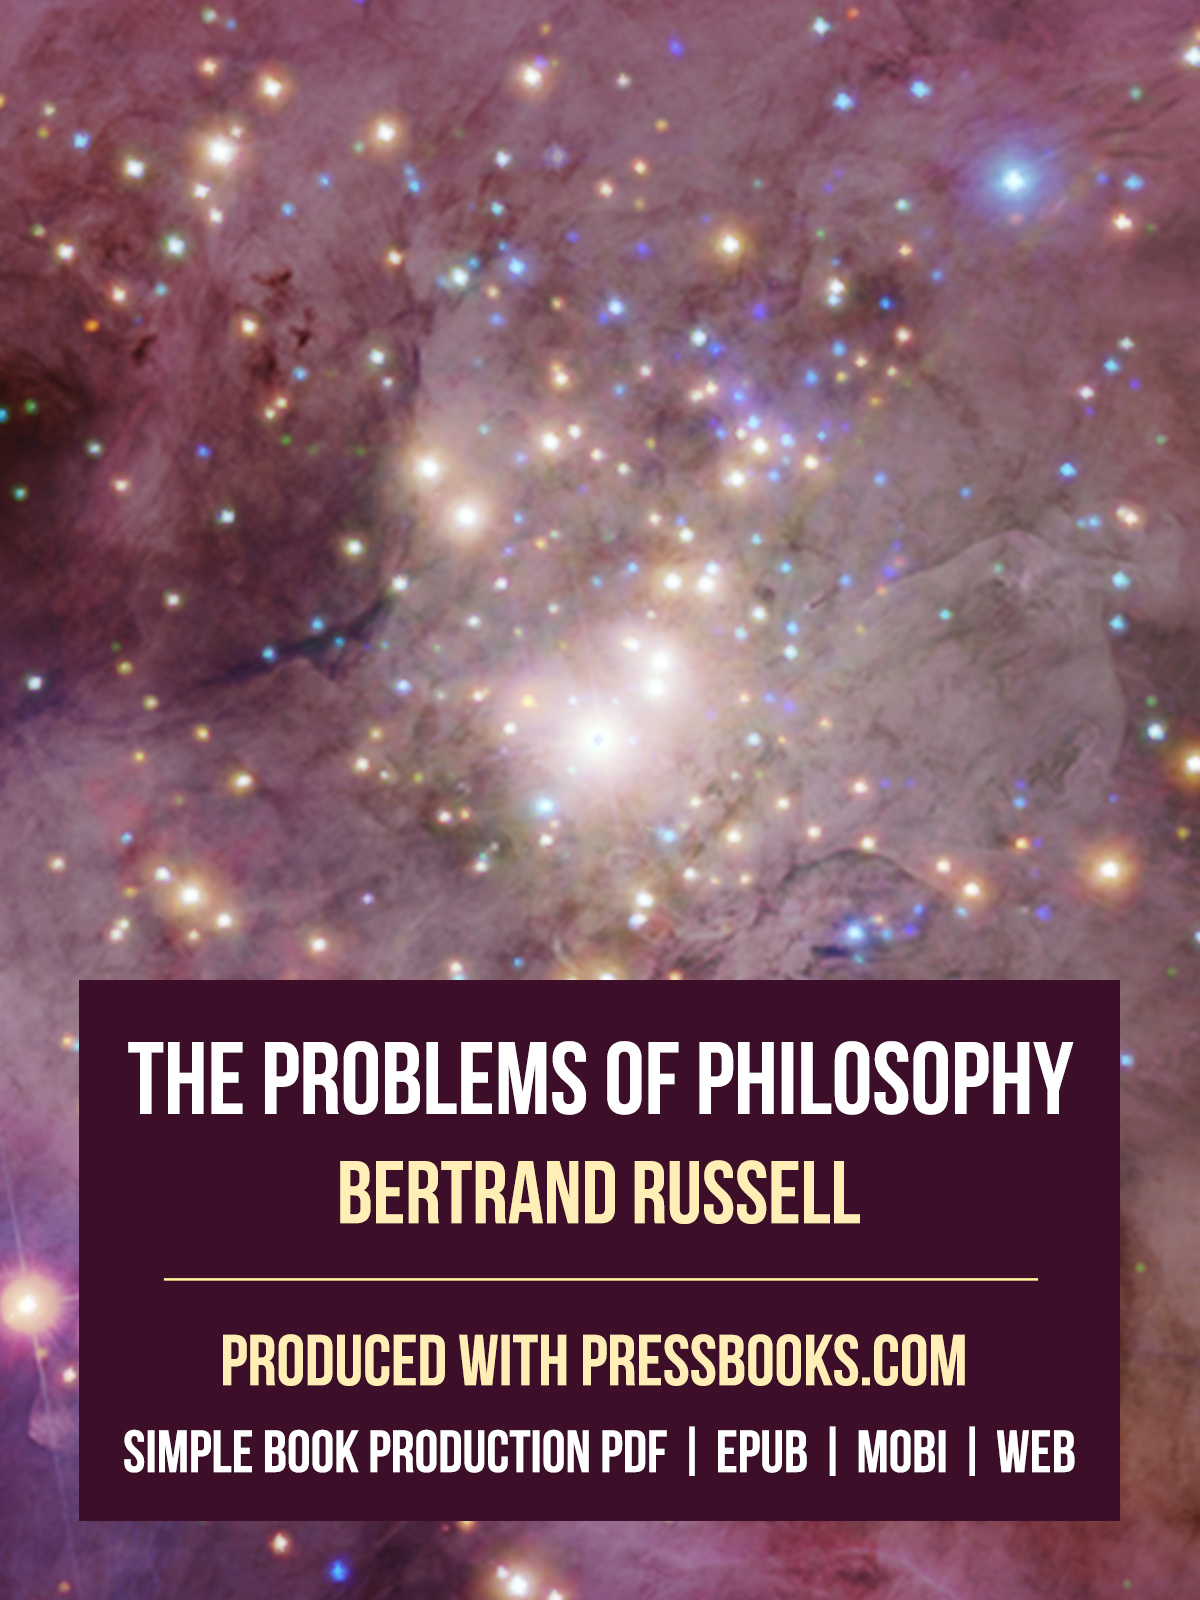 bertrand russell essay on appearance and reality Bertrand russell, problems of philosophy  cause most trouble in philosophy --  the distinction between 'appearance' and 'reality', between what things seem to.